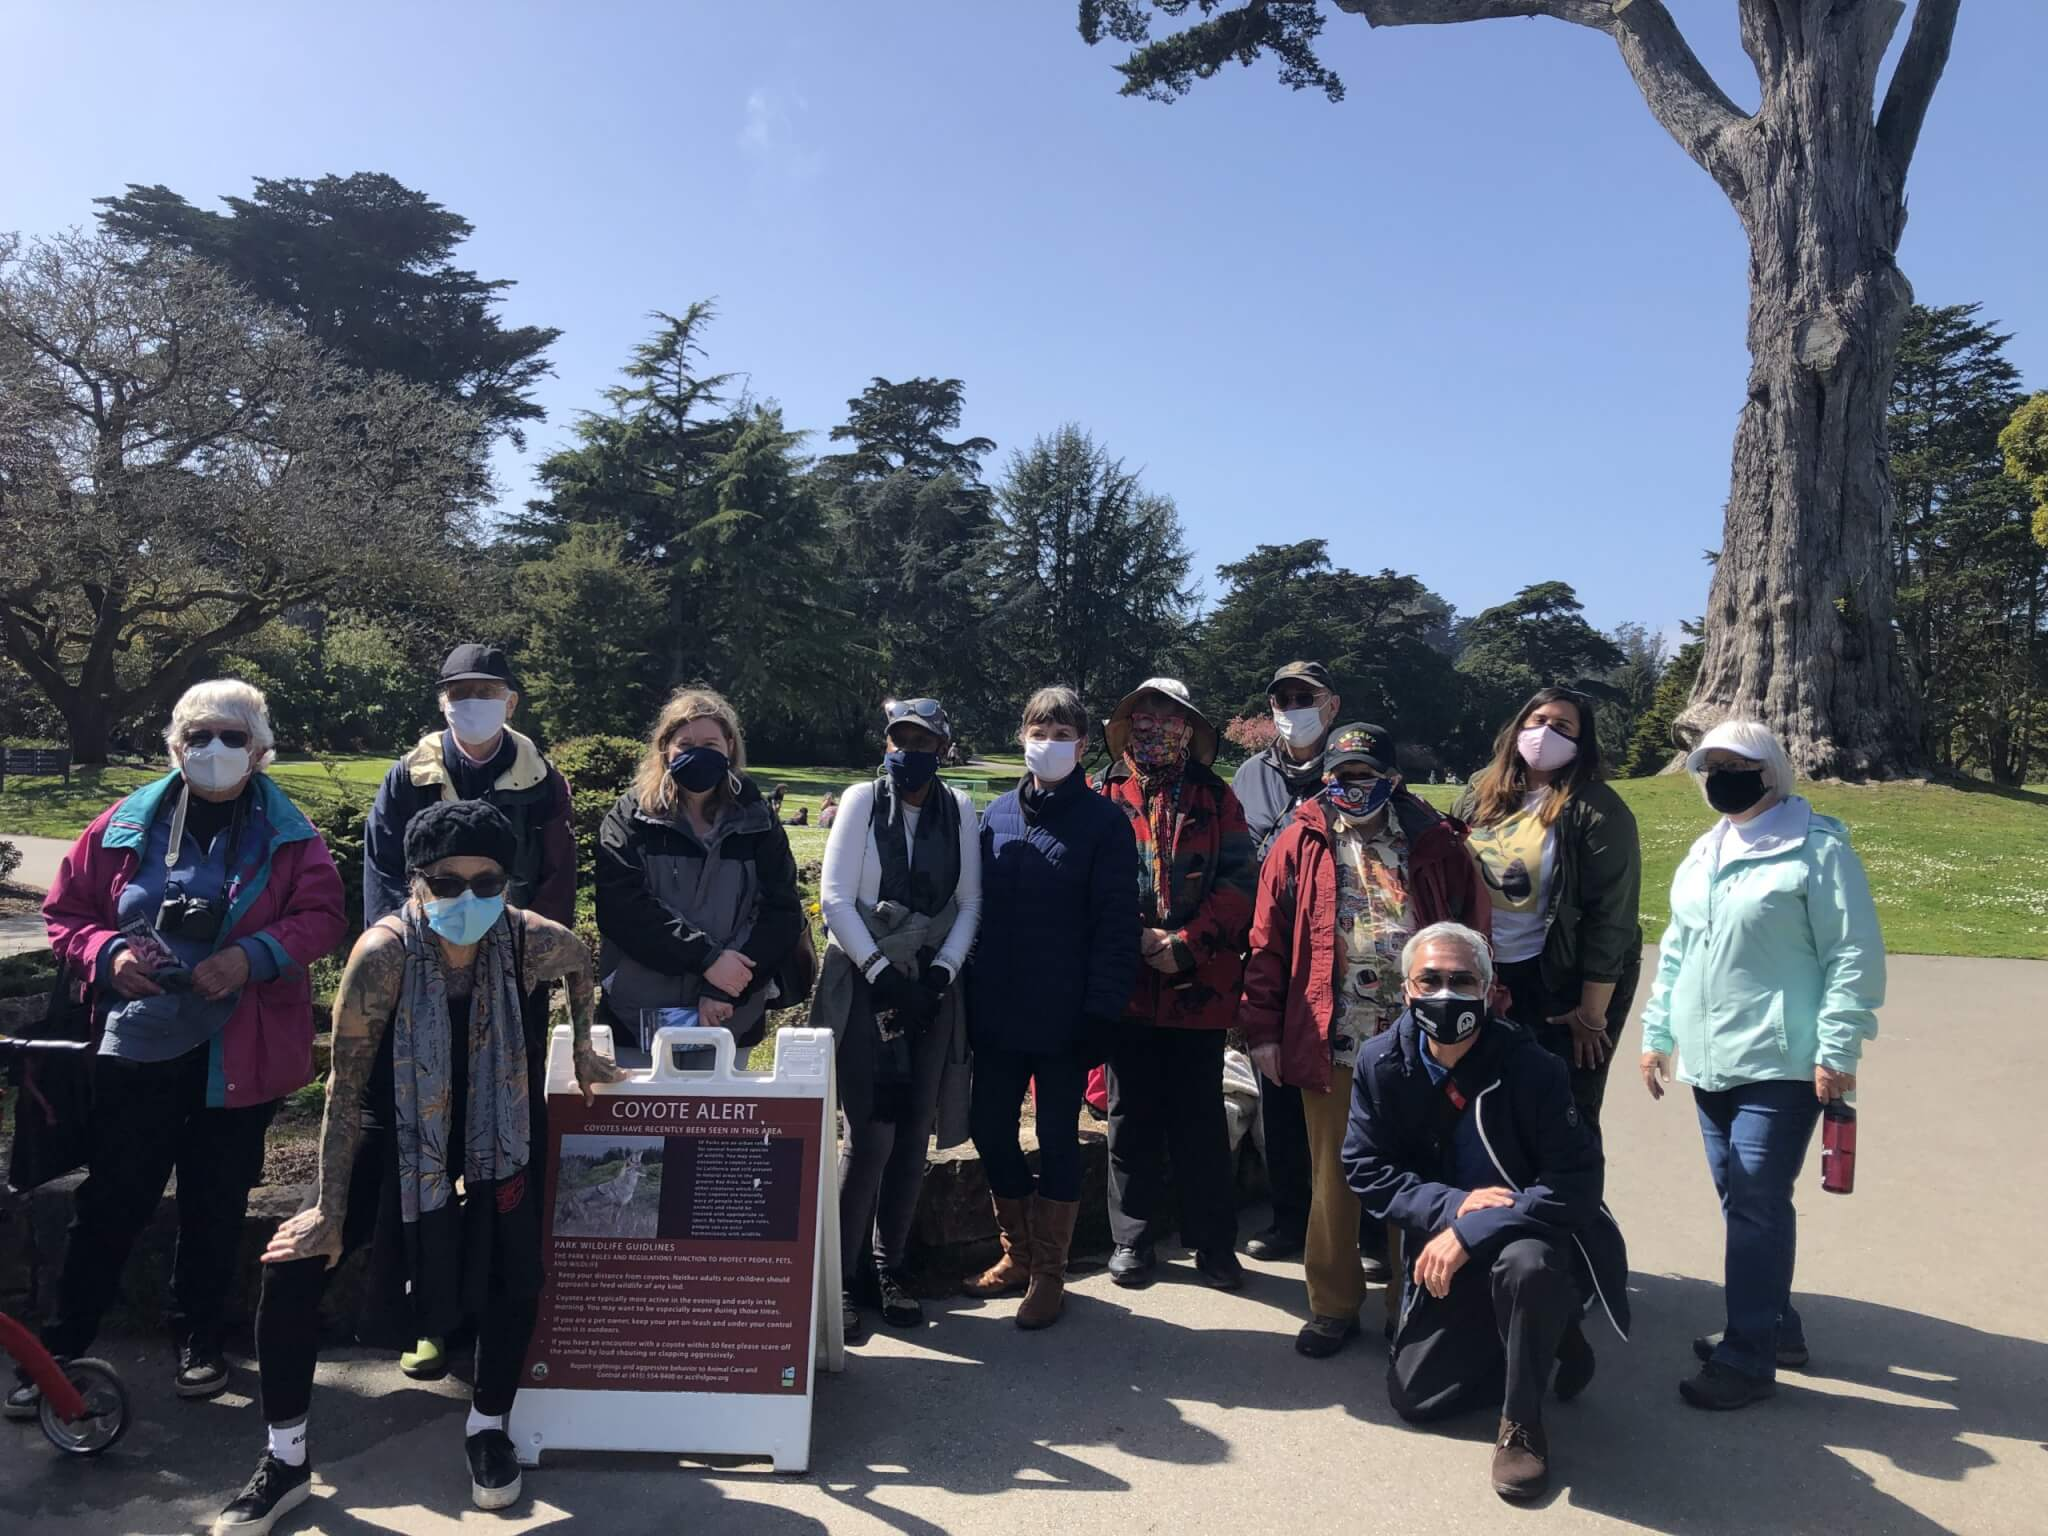 Members of San Francisco Senior Center's Plant Chat group standing together outside